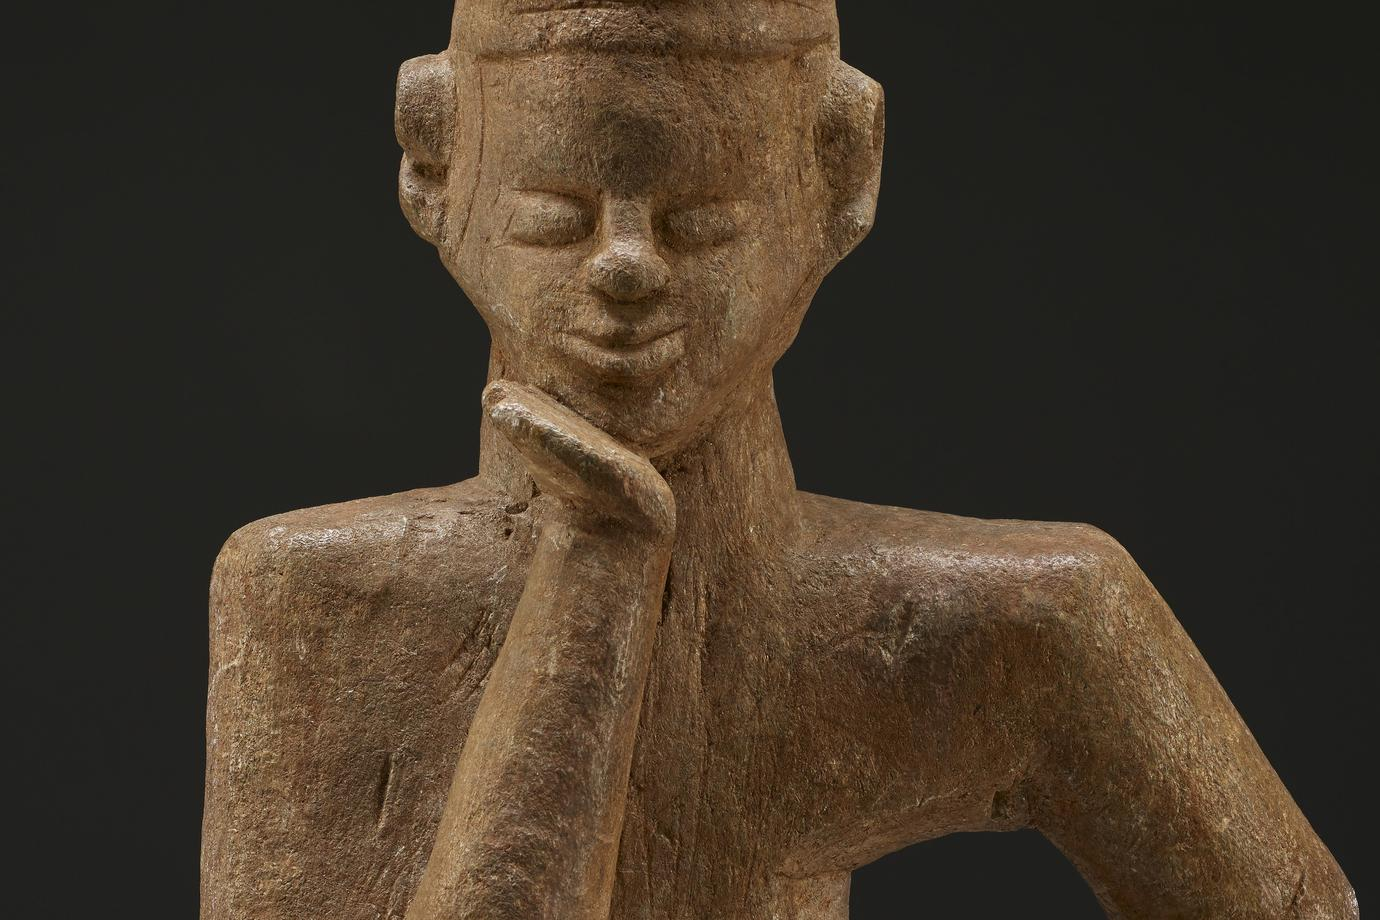 seated figure with legs bent and crossed one on top of the other; PL hand on hip, with elbow bent; very long PR arm with elbow on knee and chin resting on hand; slightly smiling face; large, high-set ears; figure wears a hat with protrusions on top and incised cross-hatched diamonds around edges; stone has tan patina; affixed to bronze-colored metal base